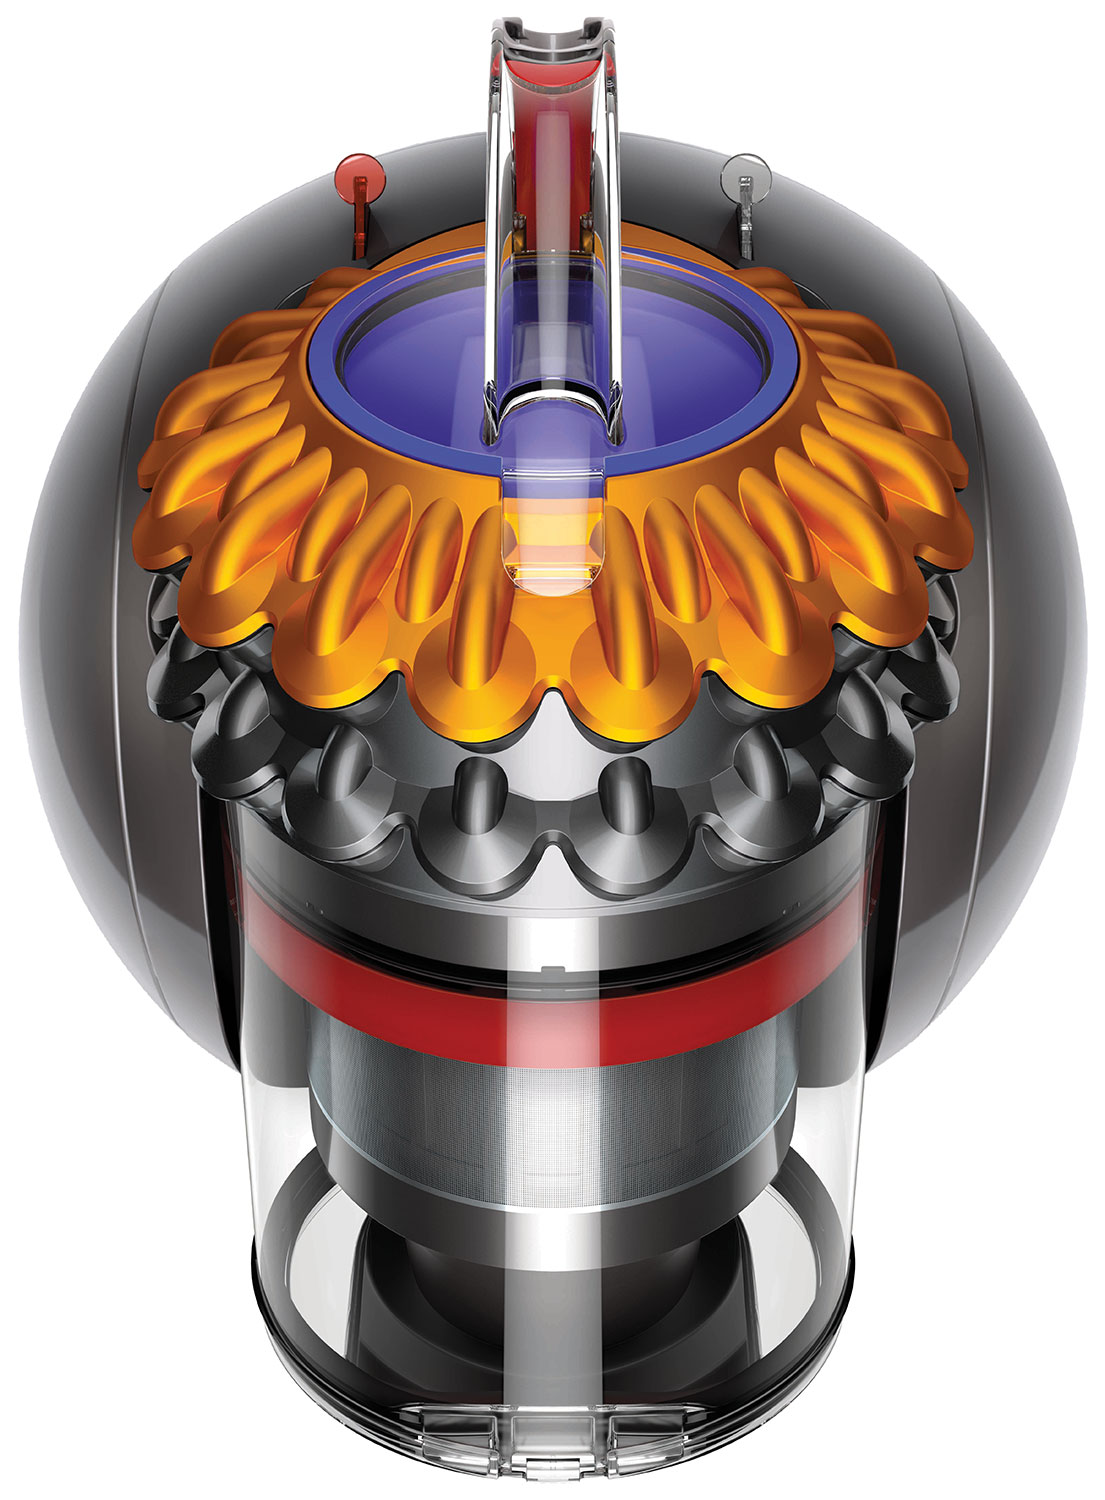 dyson big ball multi floor the brick. Black Bedroom Furniture Sets. Home Design Ideas